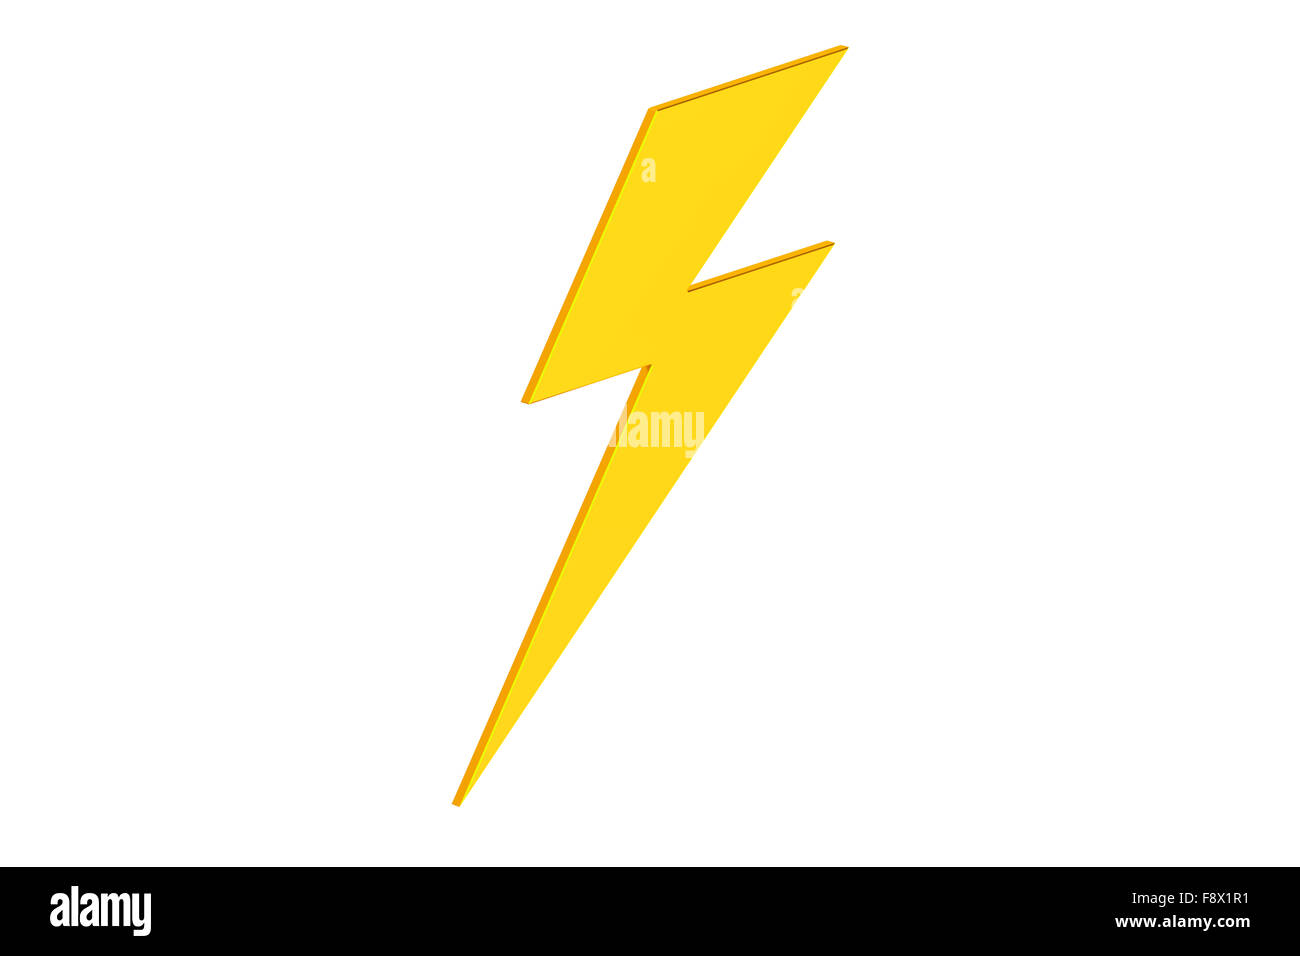 Lightning Bolt Icon On Yellow High Resolution Stock Photography And Images Alamy